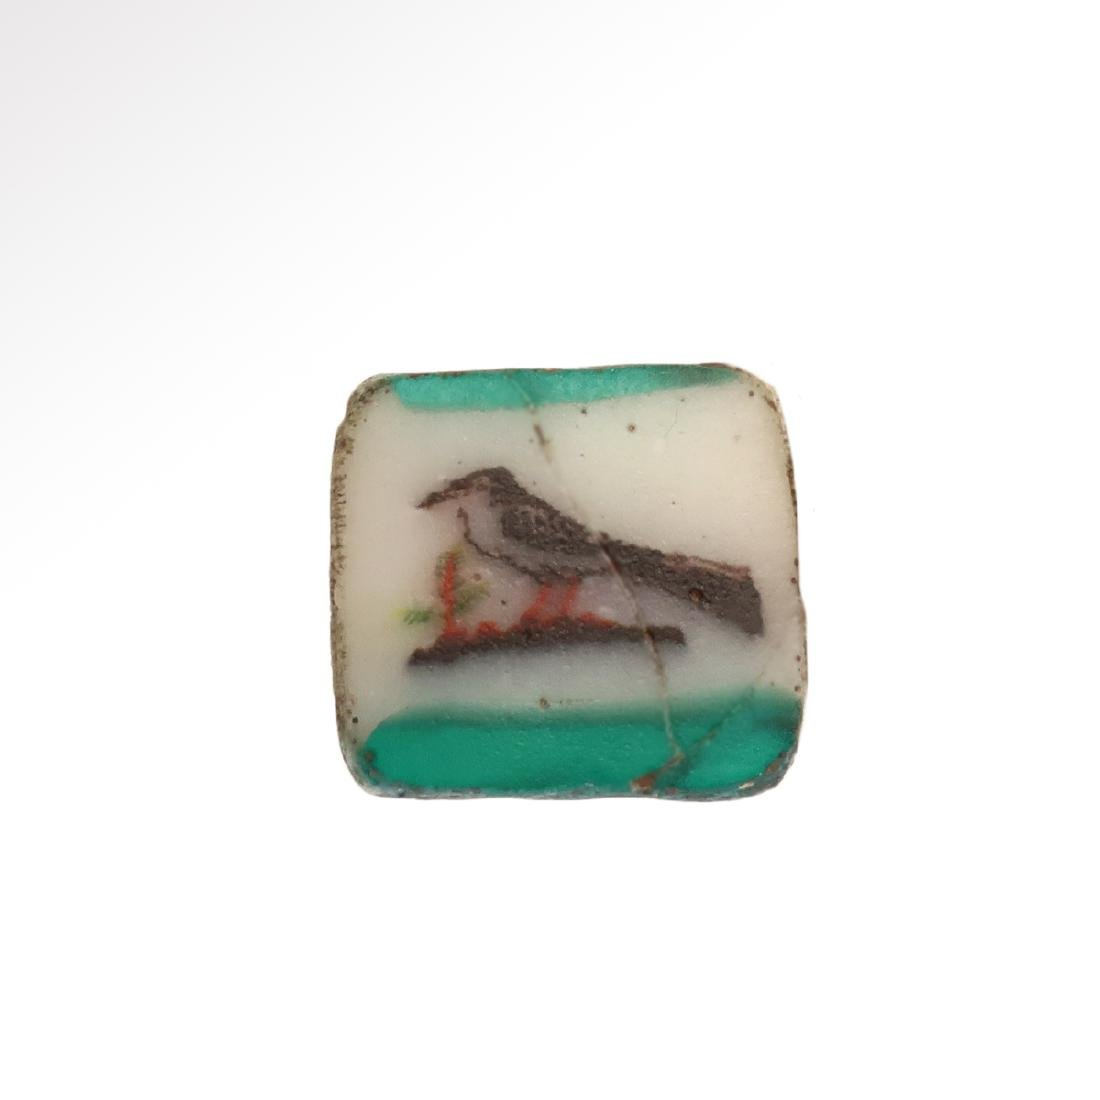 Egyptian Mosaic Glass Plaque Inlay with Swallow Bird